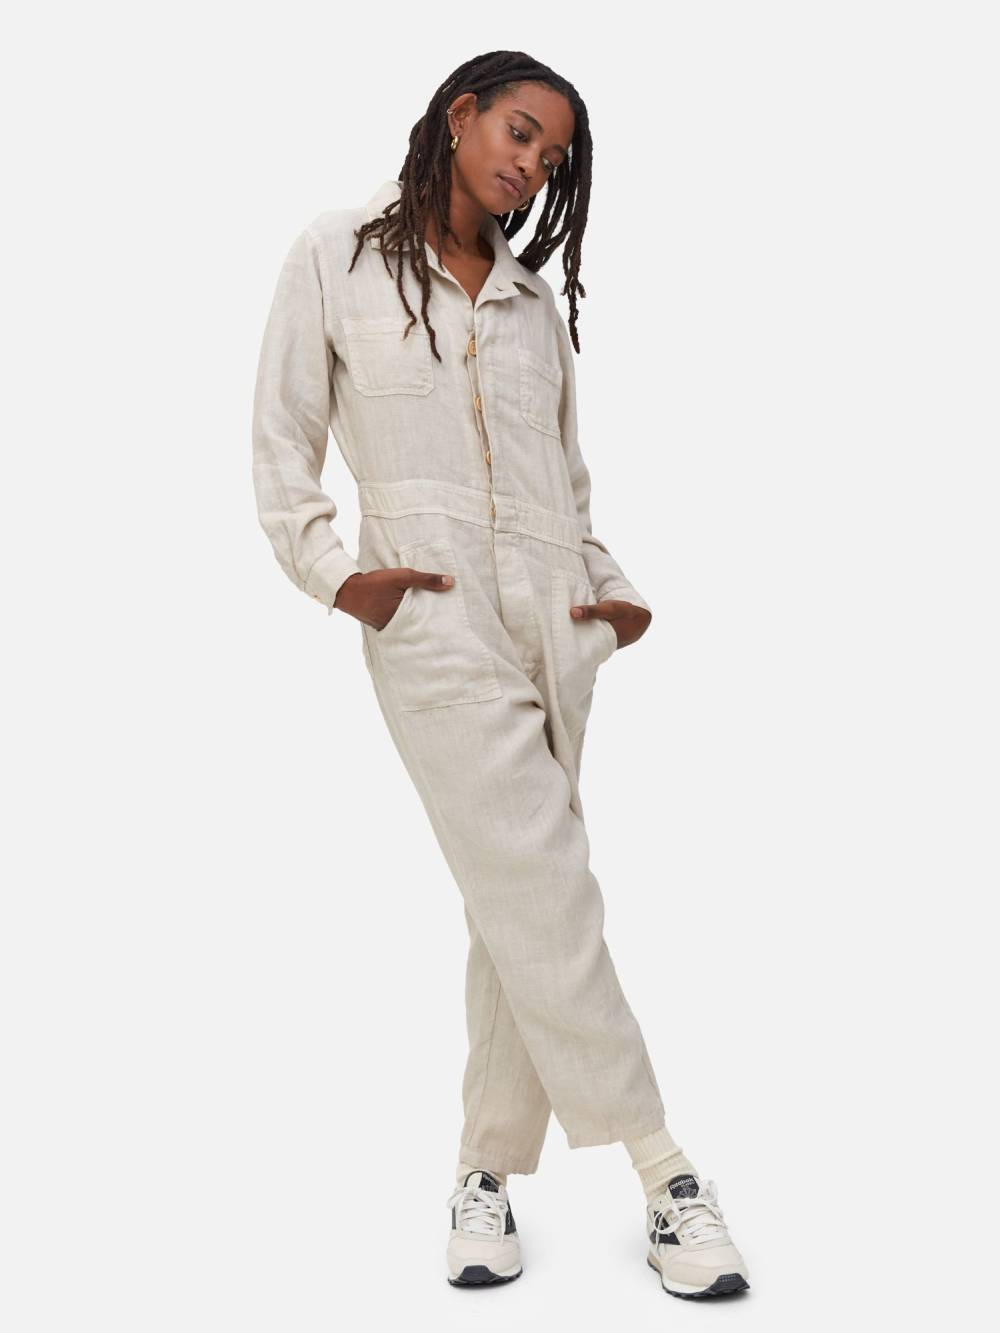 mate women linen clothing brand